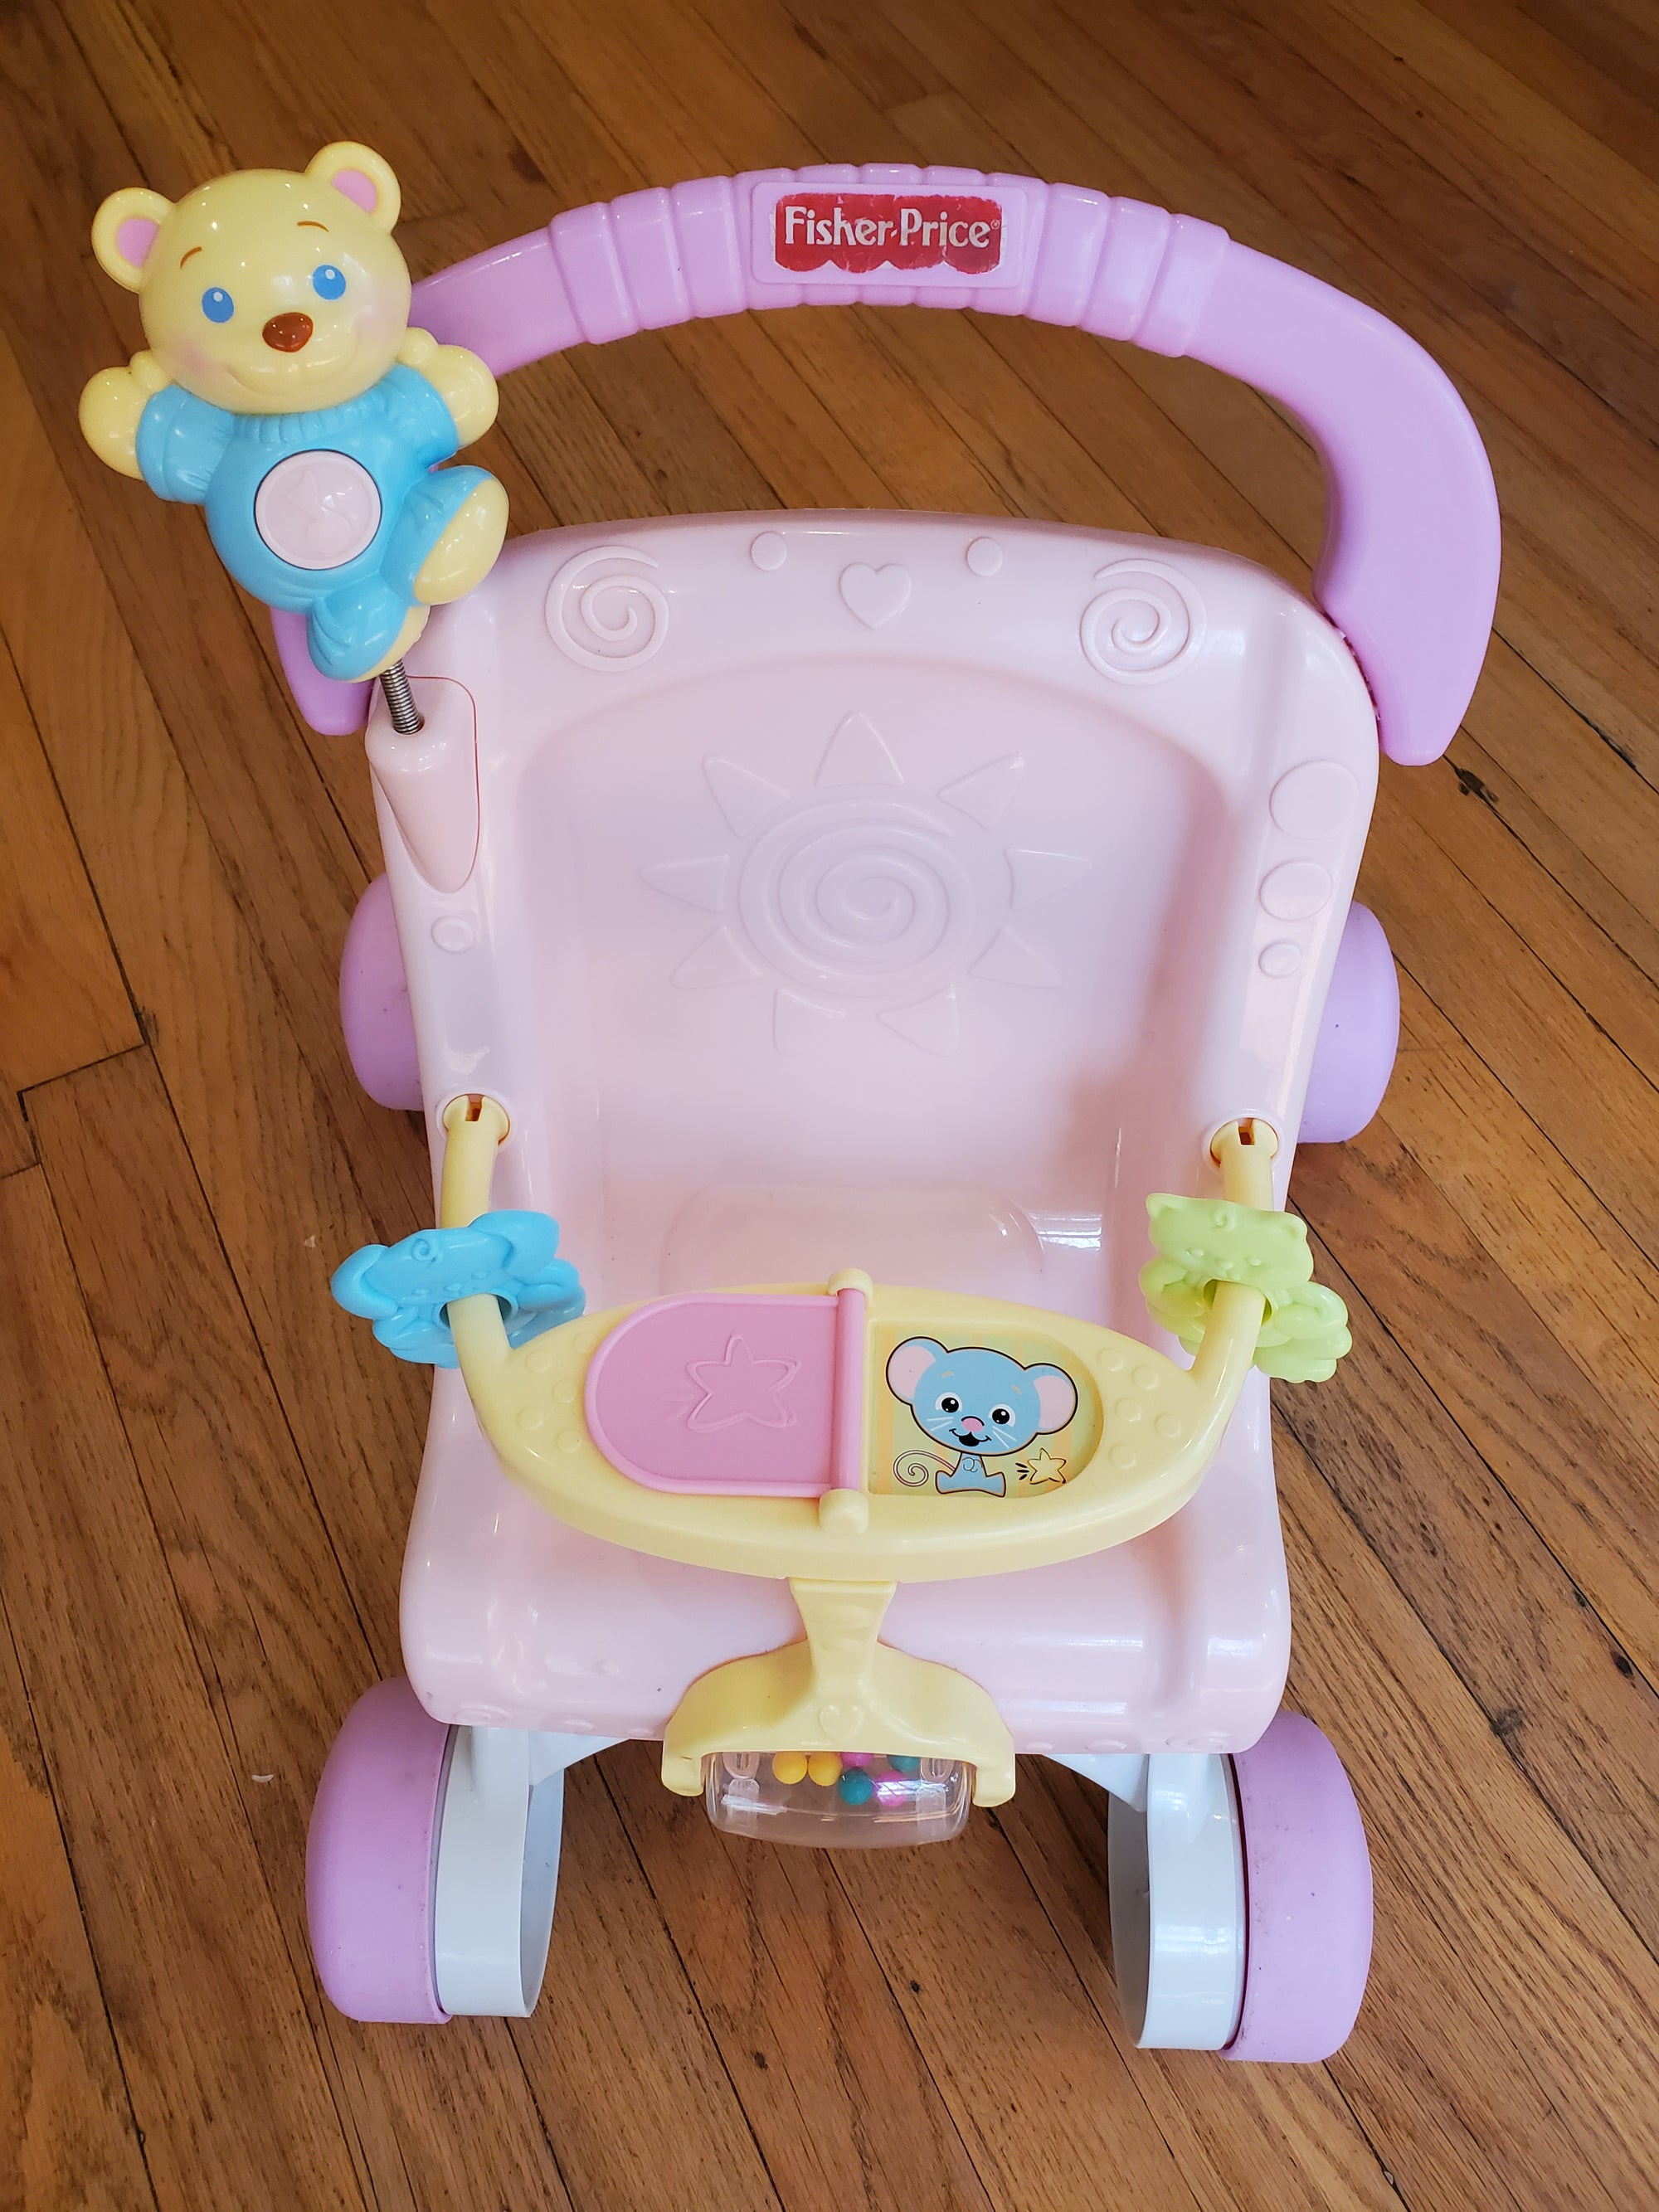 Resale Pretend Play Stroller Toy